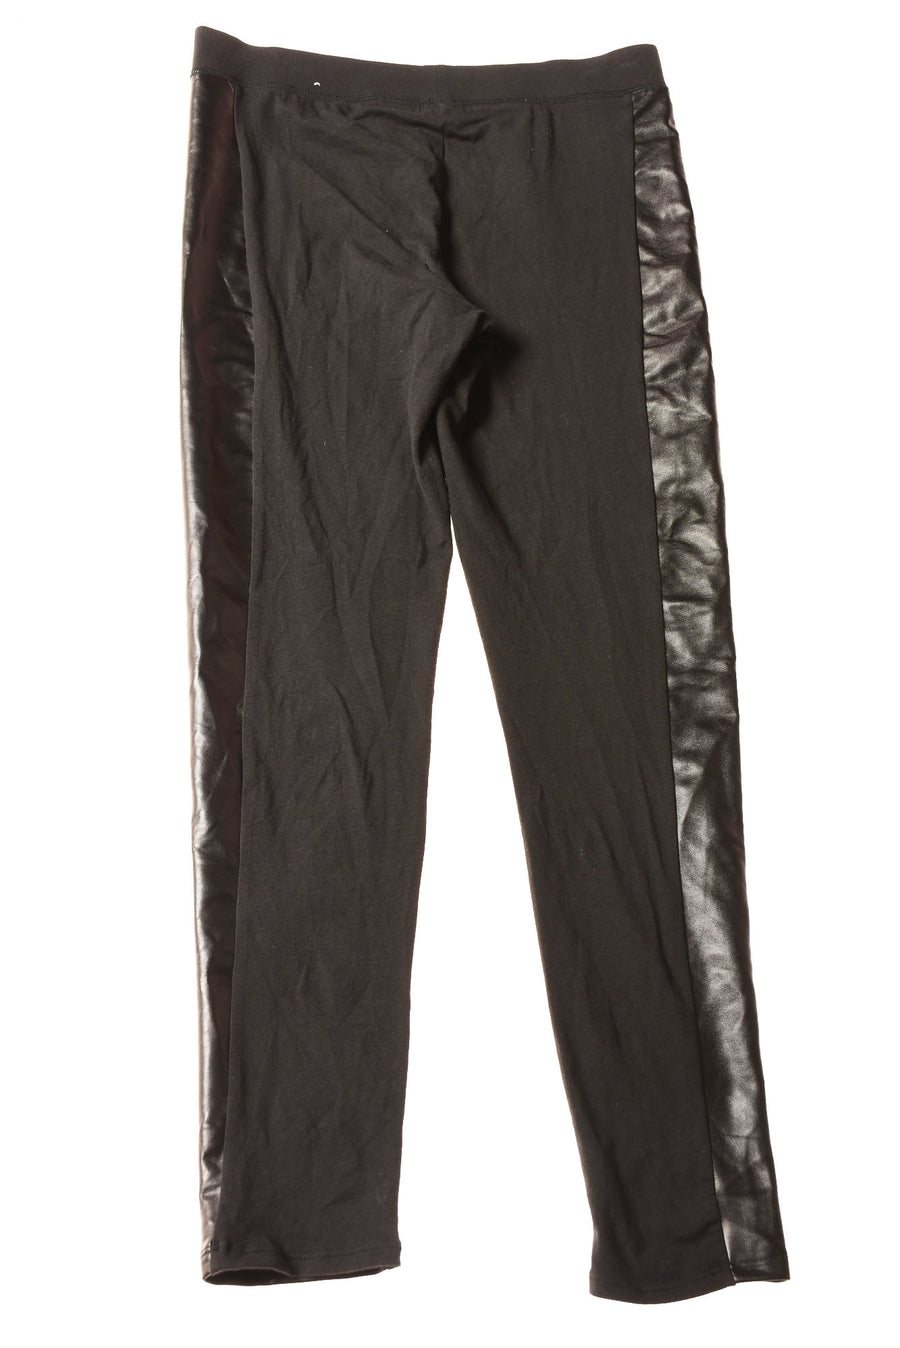 USED Pink By Victoria Secret Women's Pants Medium Black